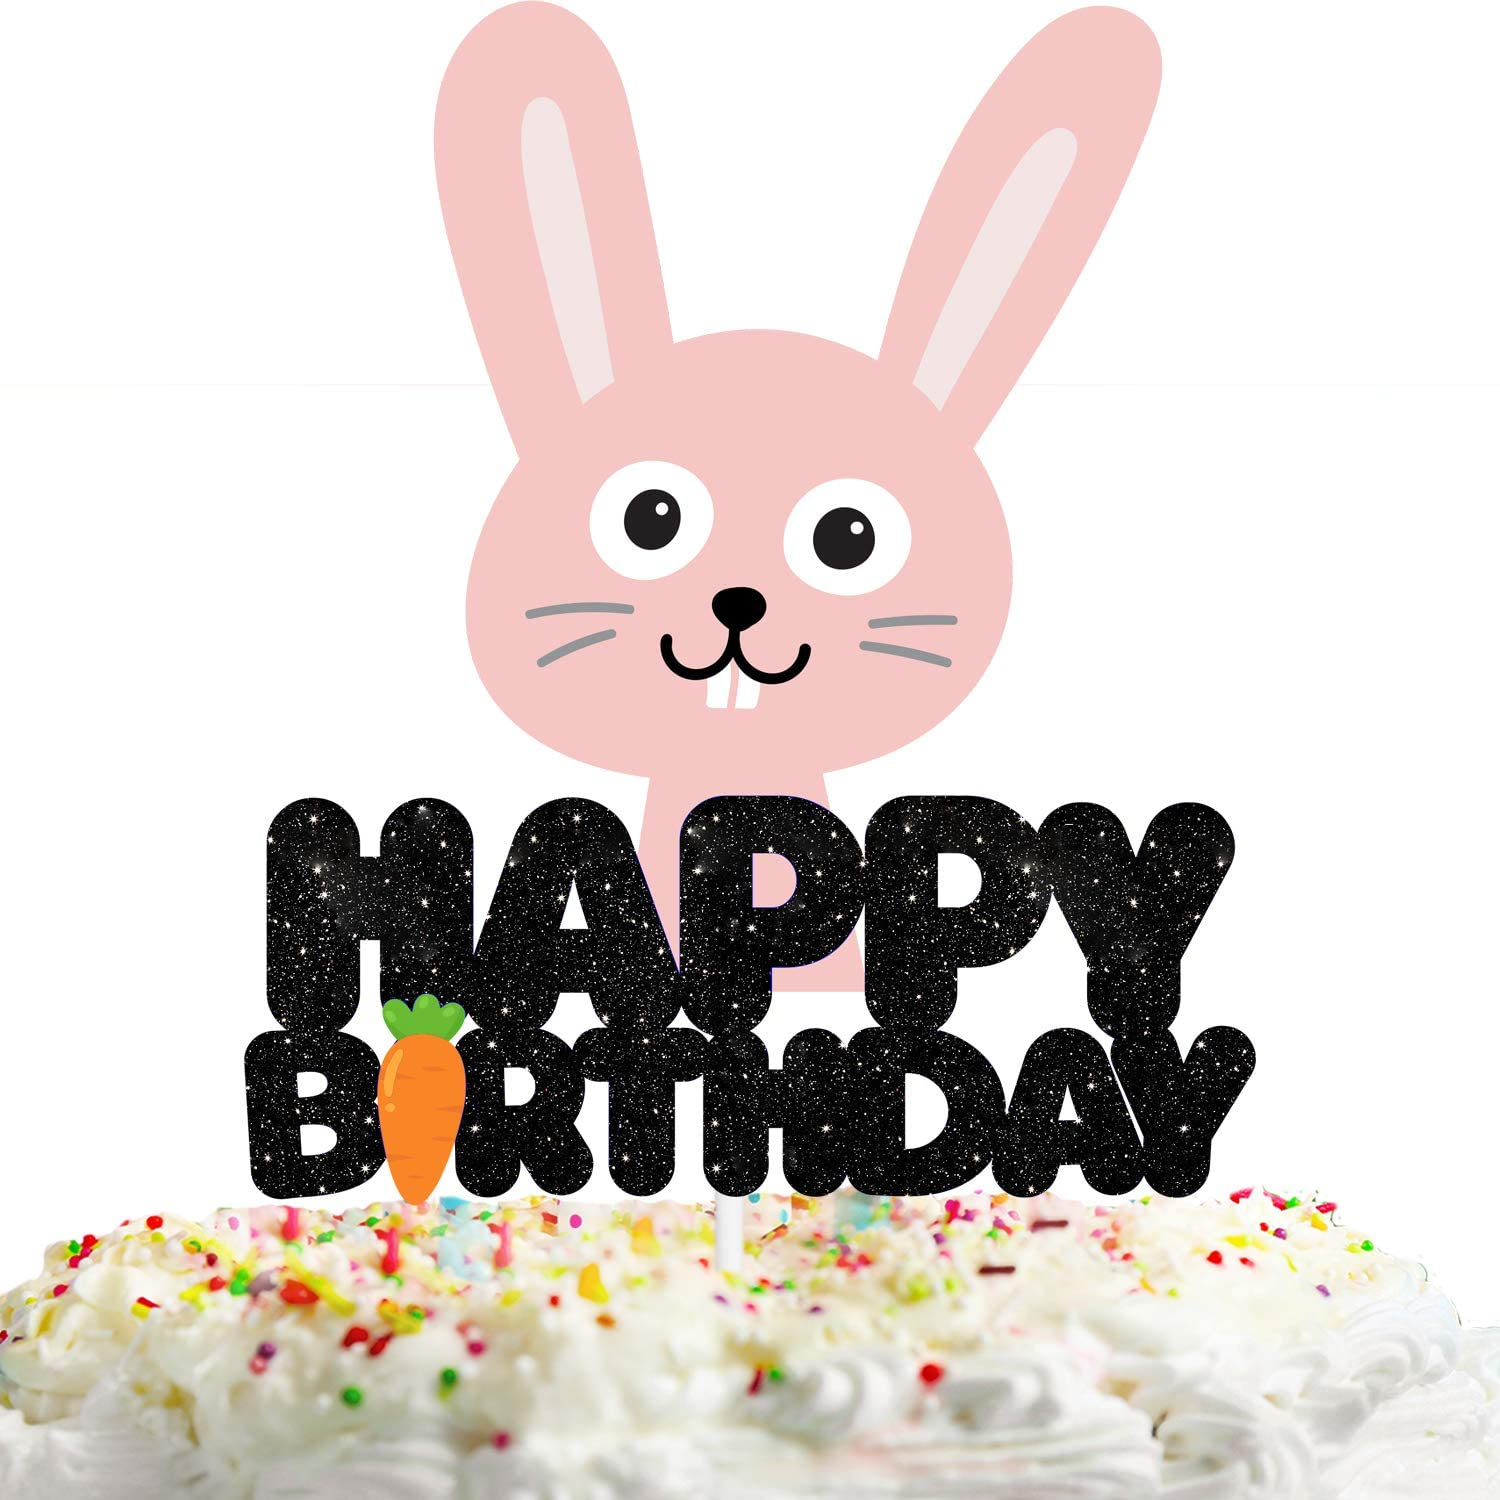 Rabbit Happy Birthday Cake Topper Decorations with Multicolored Animal for Birthday Theme Baby Shower Party Decor Supplies